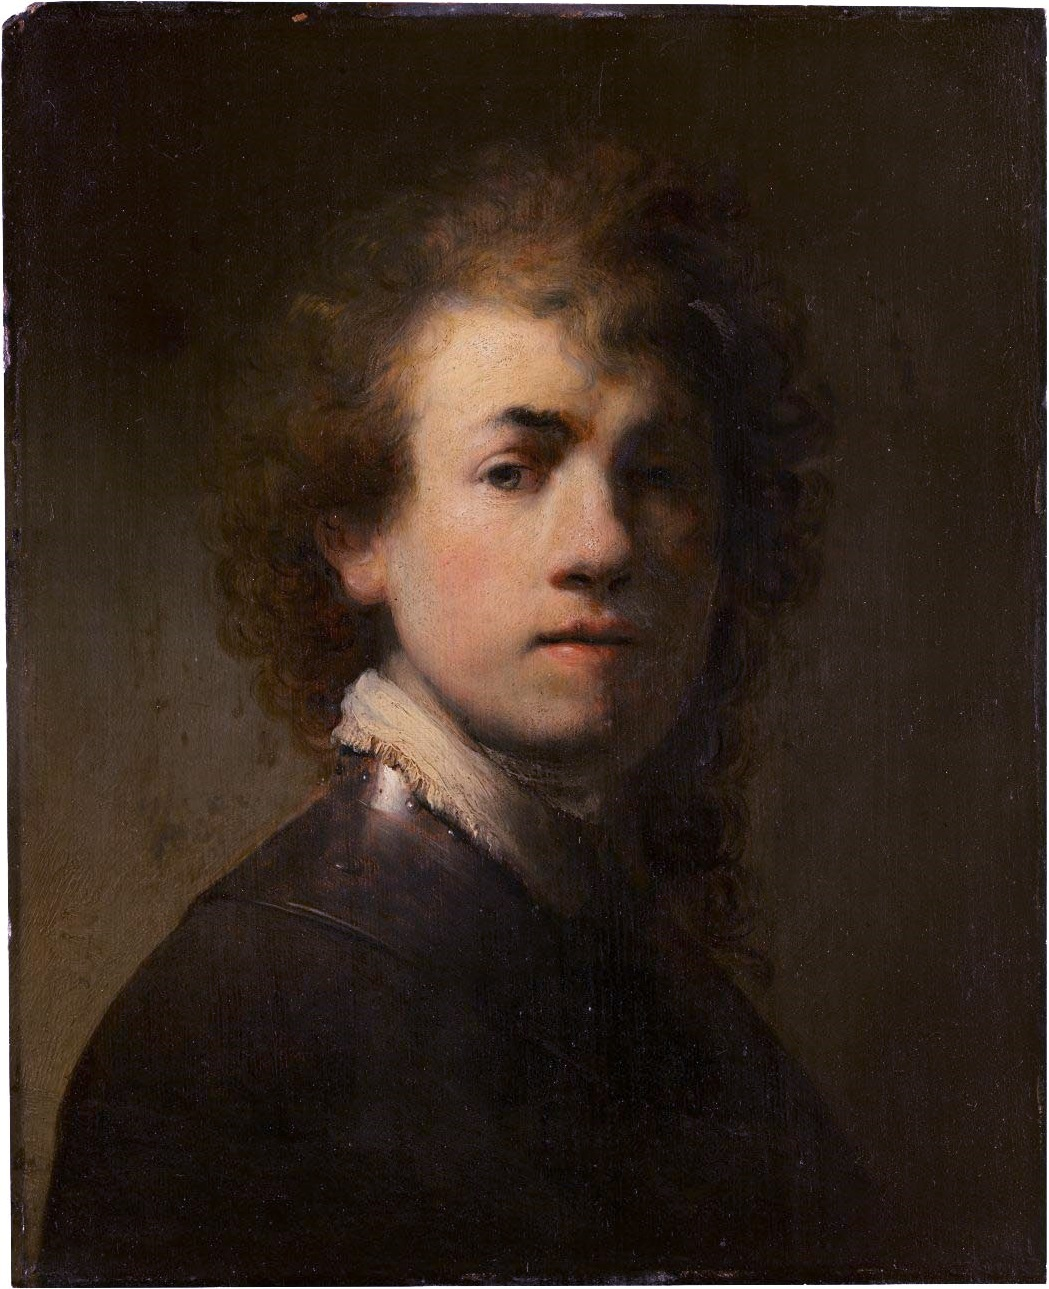 (image: https://upload.wikimedia.org/wikipedia/commons/f/fe/Rembrandt_van_Rijn_184.jpg)